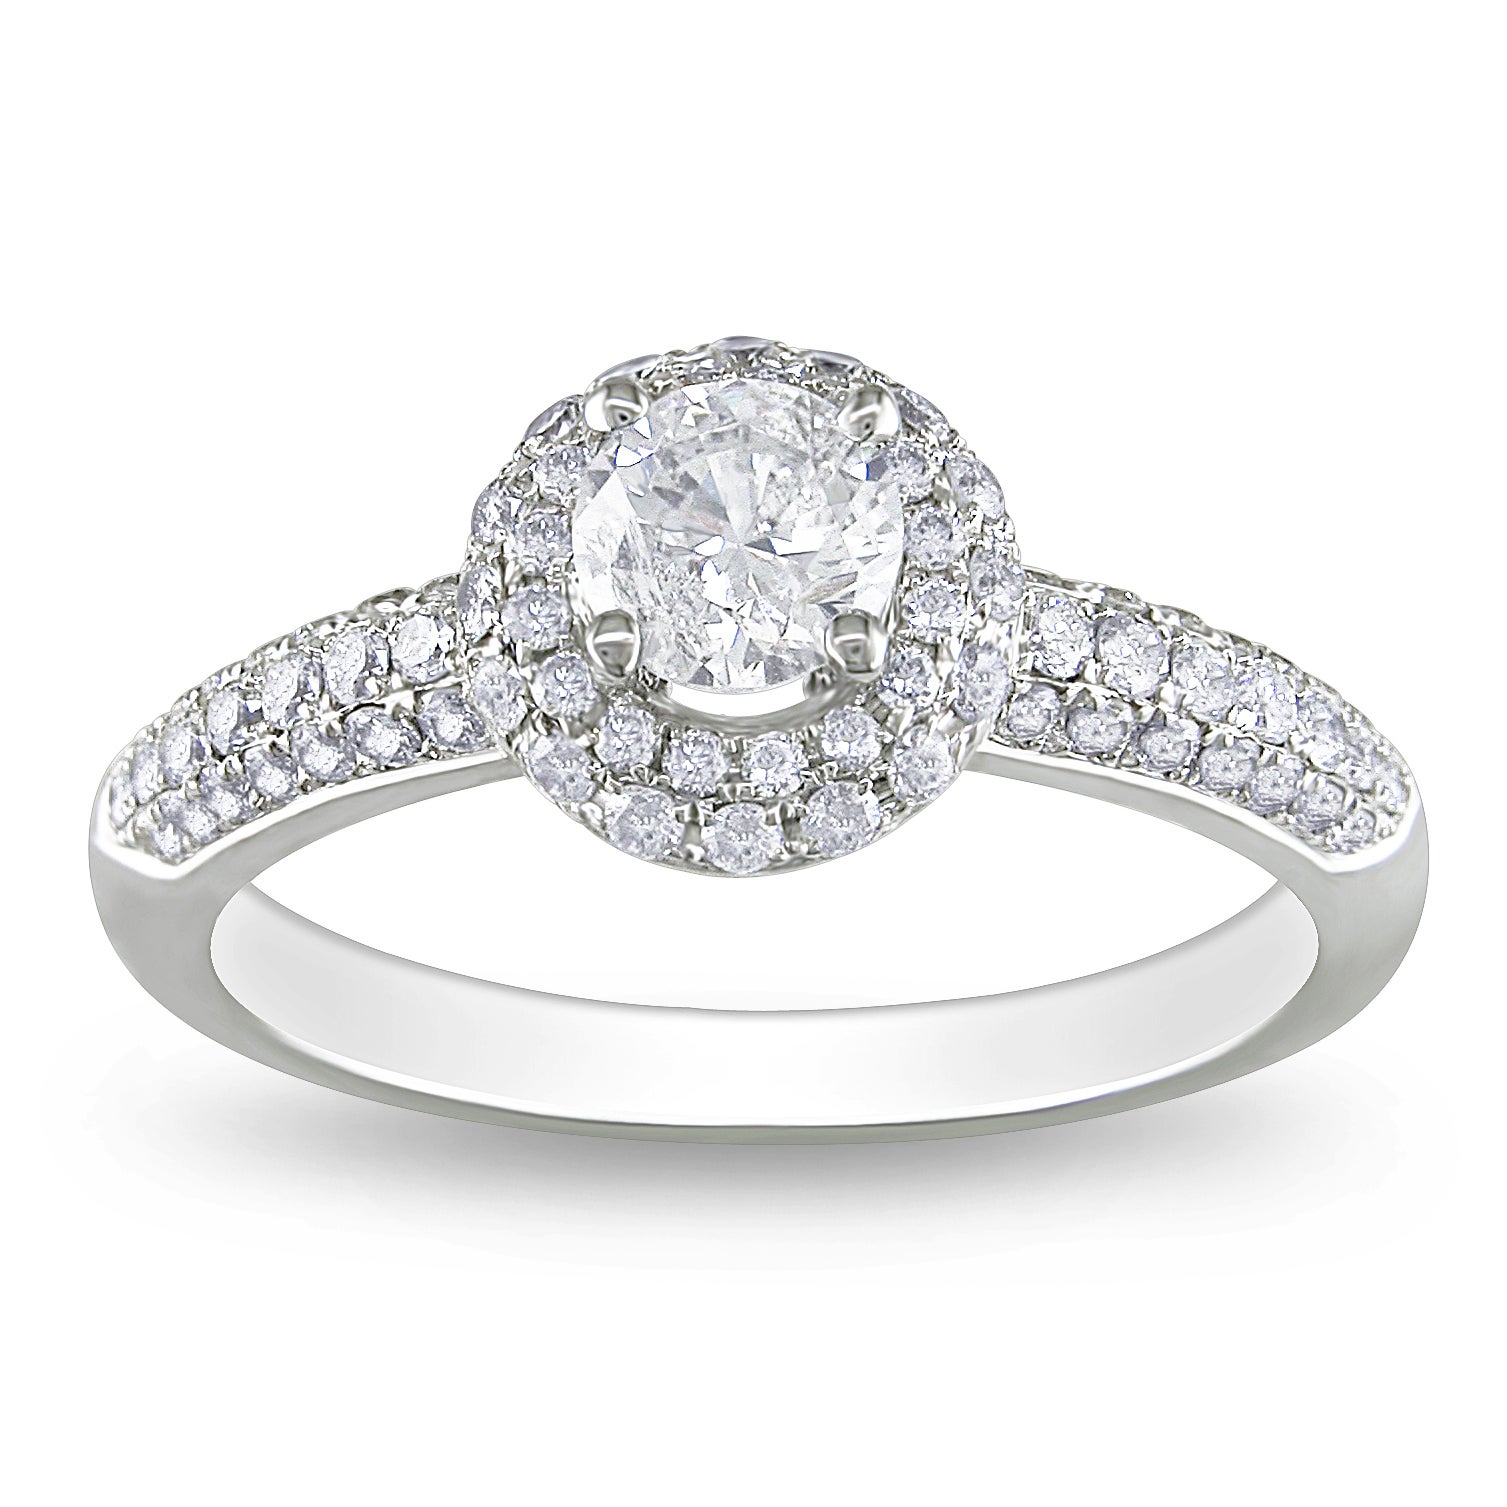 Miadora 14k White Gold 1ct TDW Diamond Halo Engagement Ring (G-H, I1-I2)